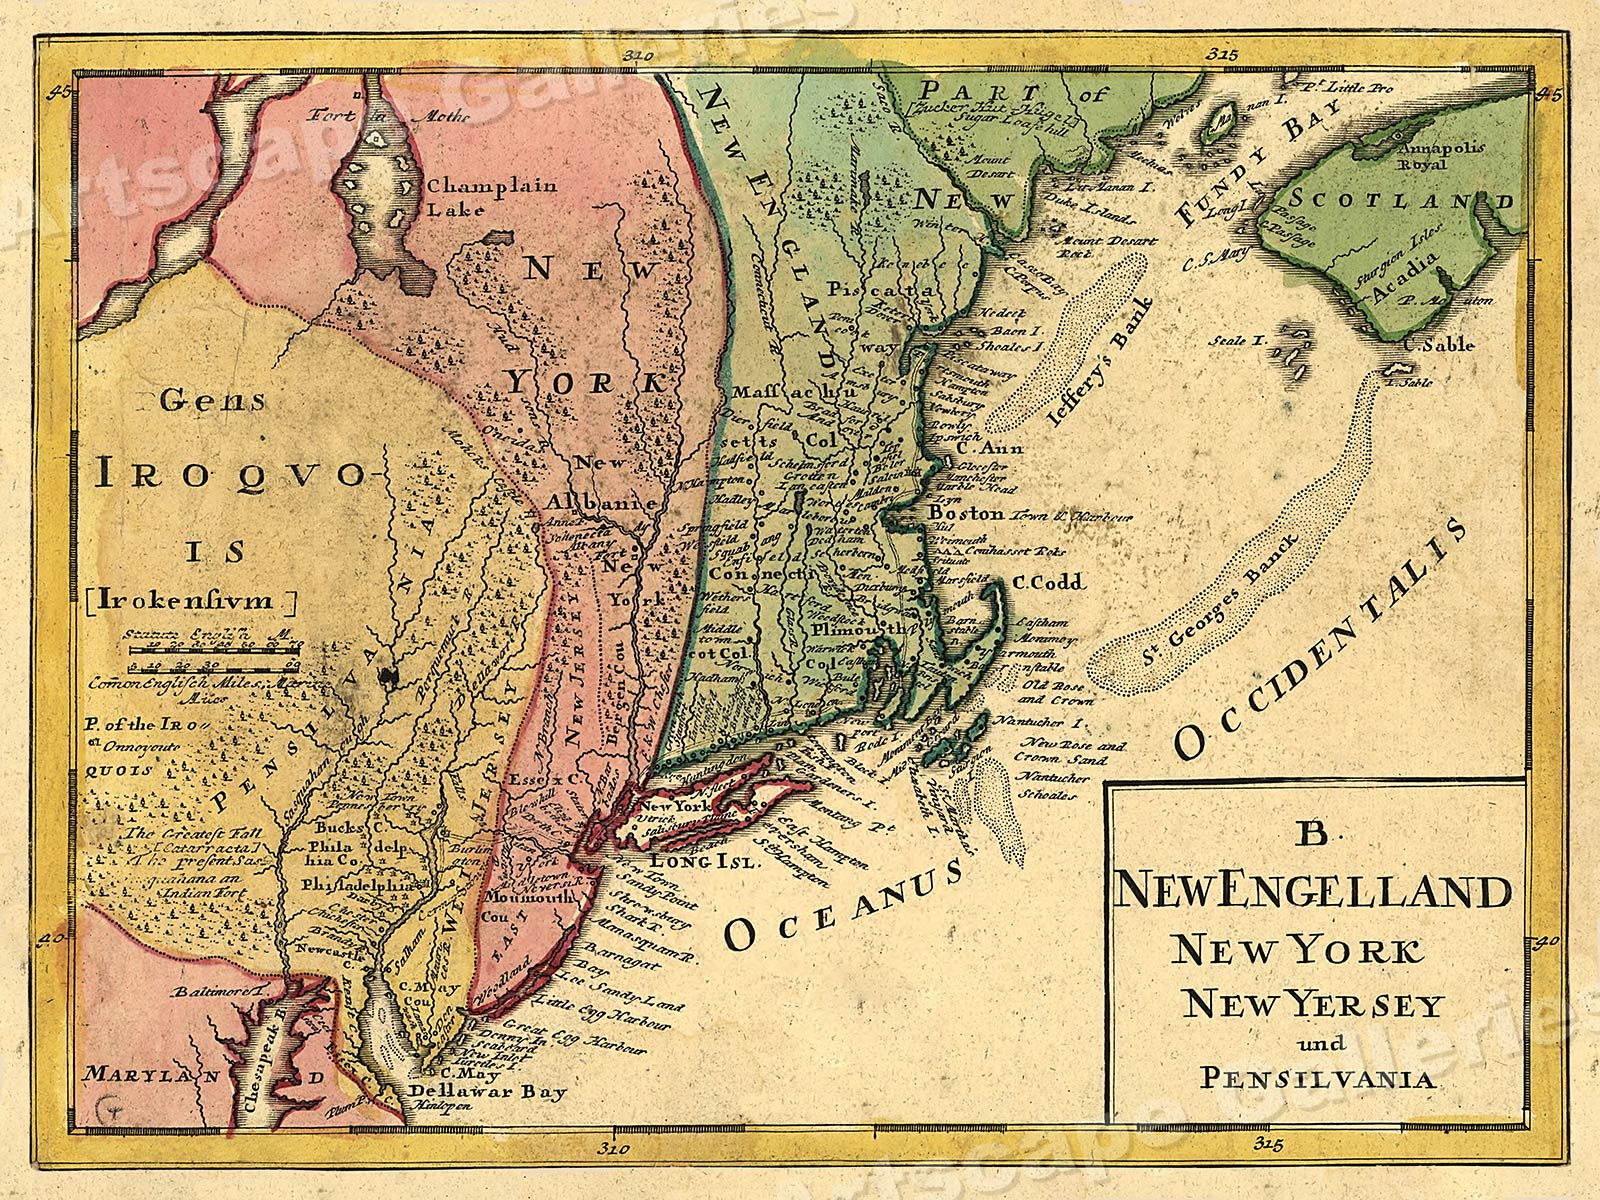 New England New York Early East Coast Map